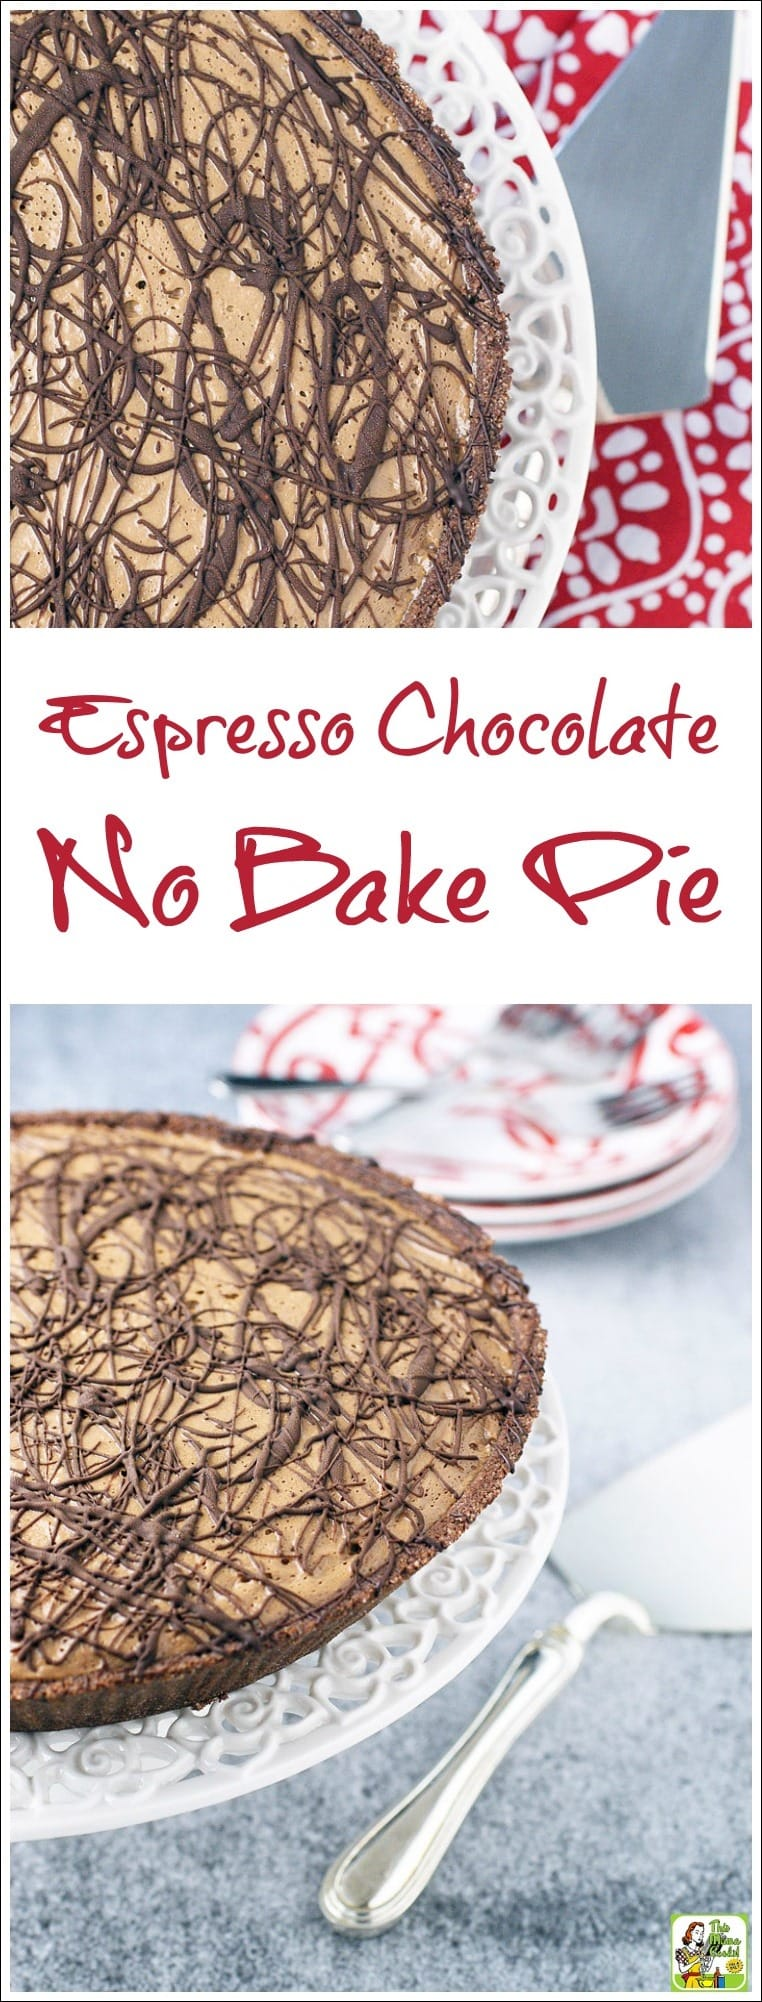 Looking for a gluten free, dairy free, egg free, or vegan dessert recipe? Try this Espresso Chocolate No Bake Pie! This dessert is  packed with plant based protein since it uses silken tofu and soymilk. It's also an easy to make dessert recipe that all chocolate fans will love!